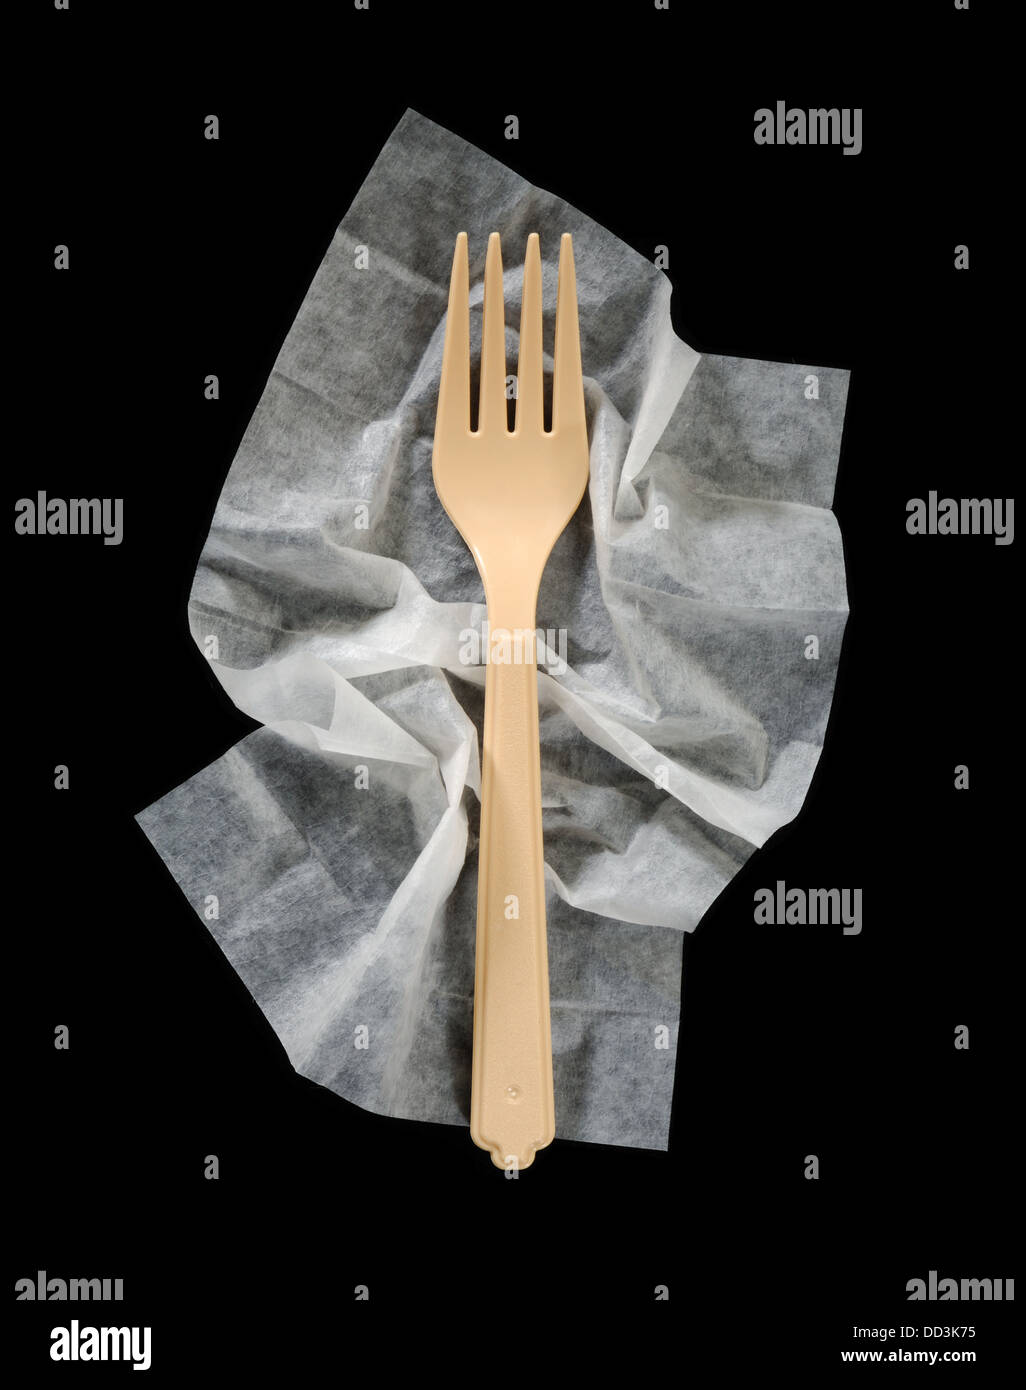 A plastic dinner fork on a crumpled cleaning napkin. - Stock Image